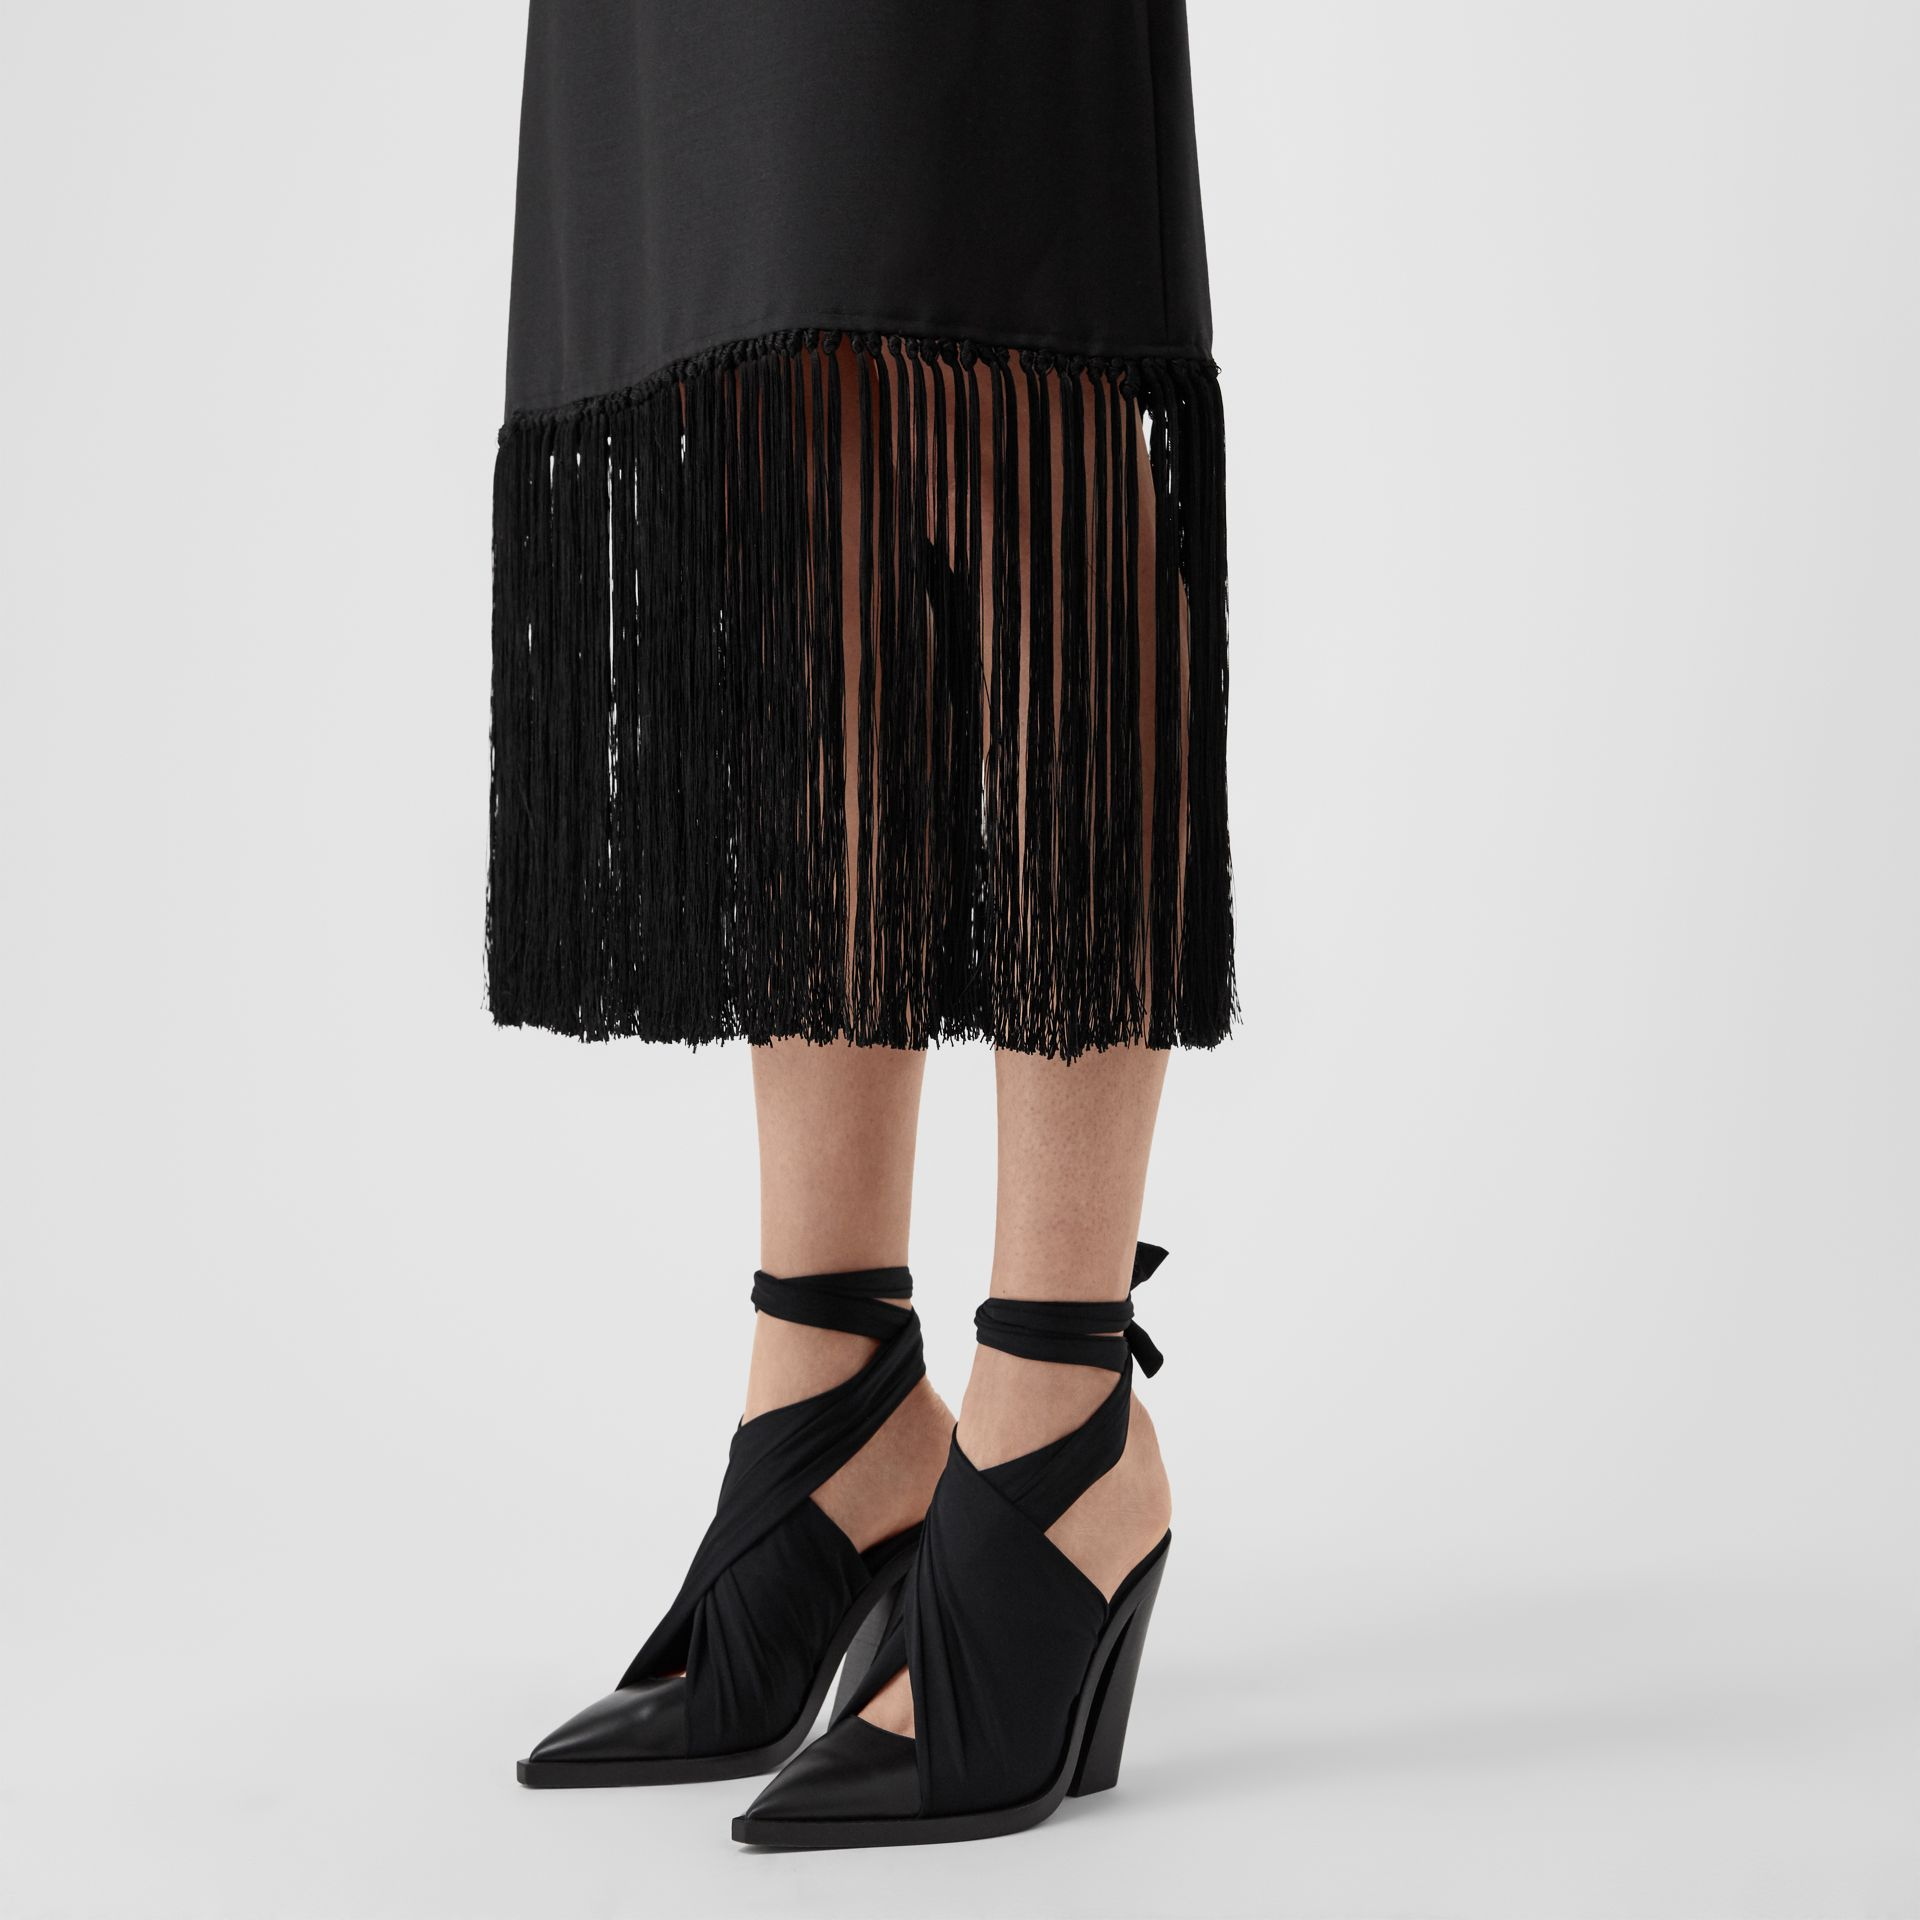 Fringed Mohair Wool A-line Skirt in Black - Women | Burberry United Kingdom - gallery image 5